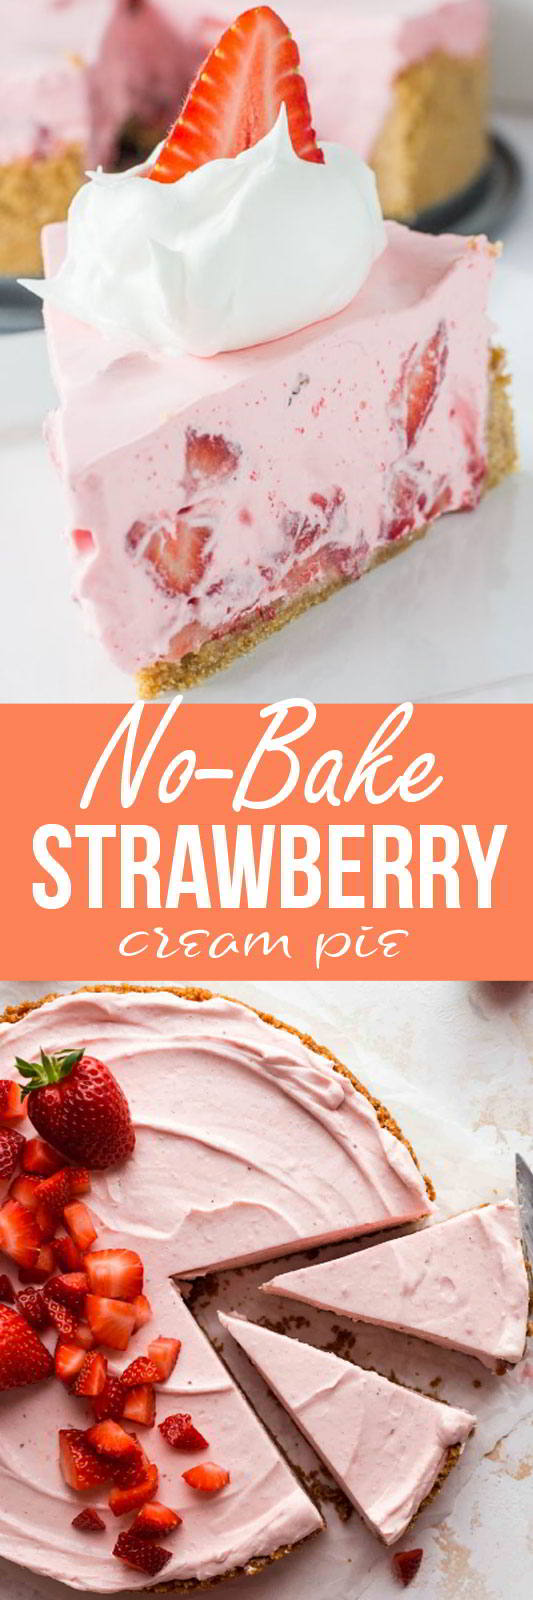 No-Bake-Strawberry-Cream-Pie